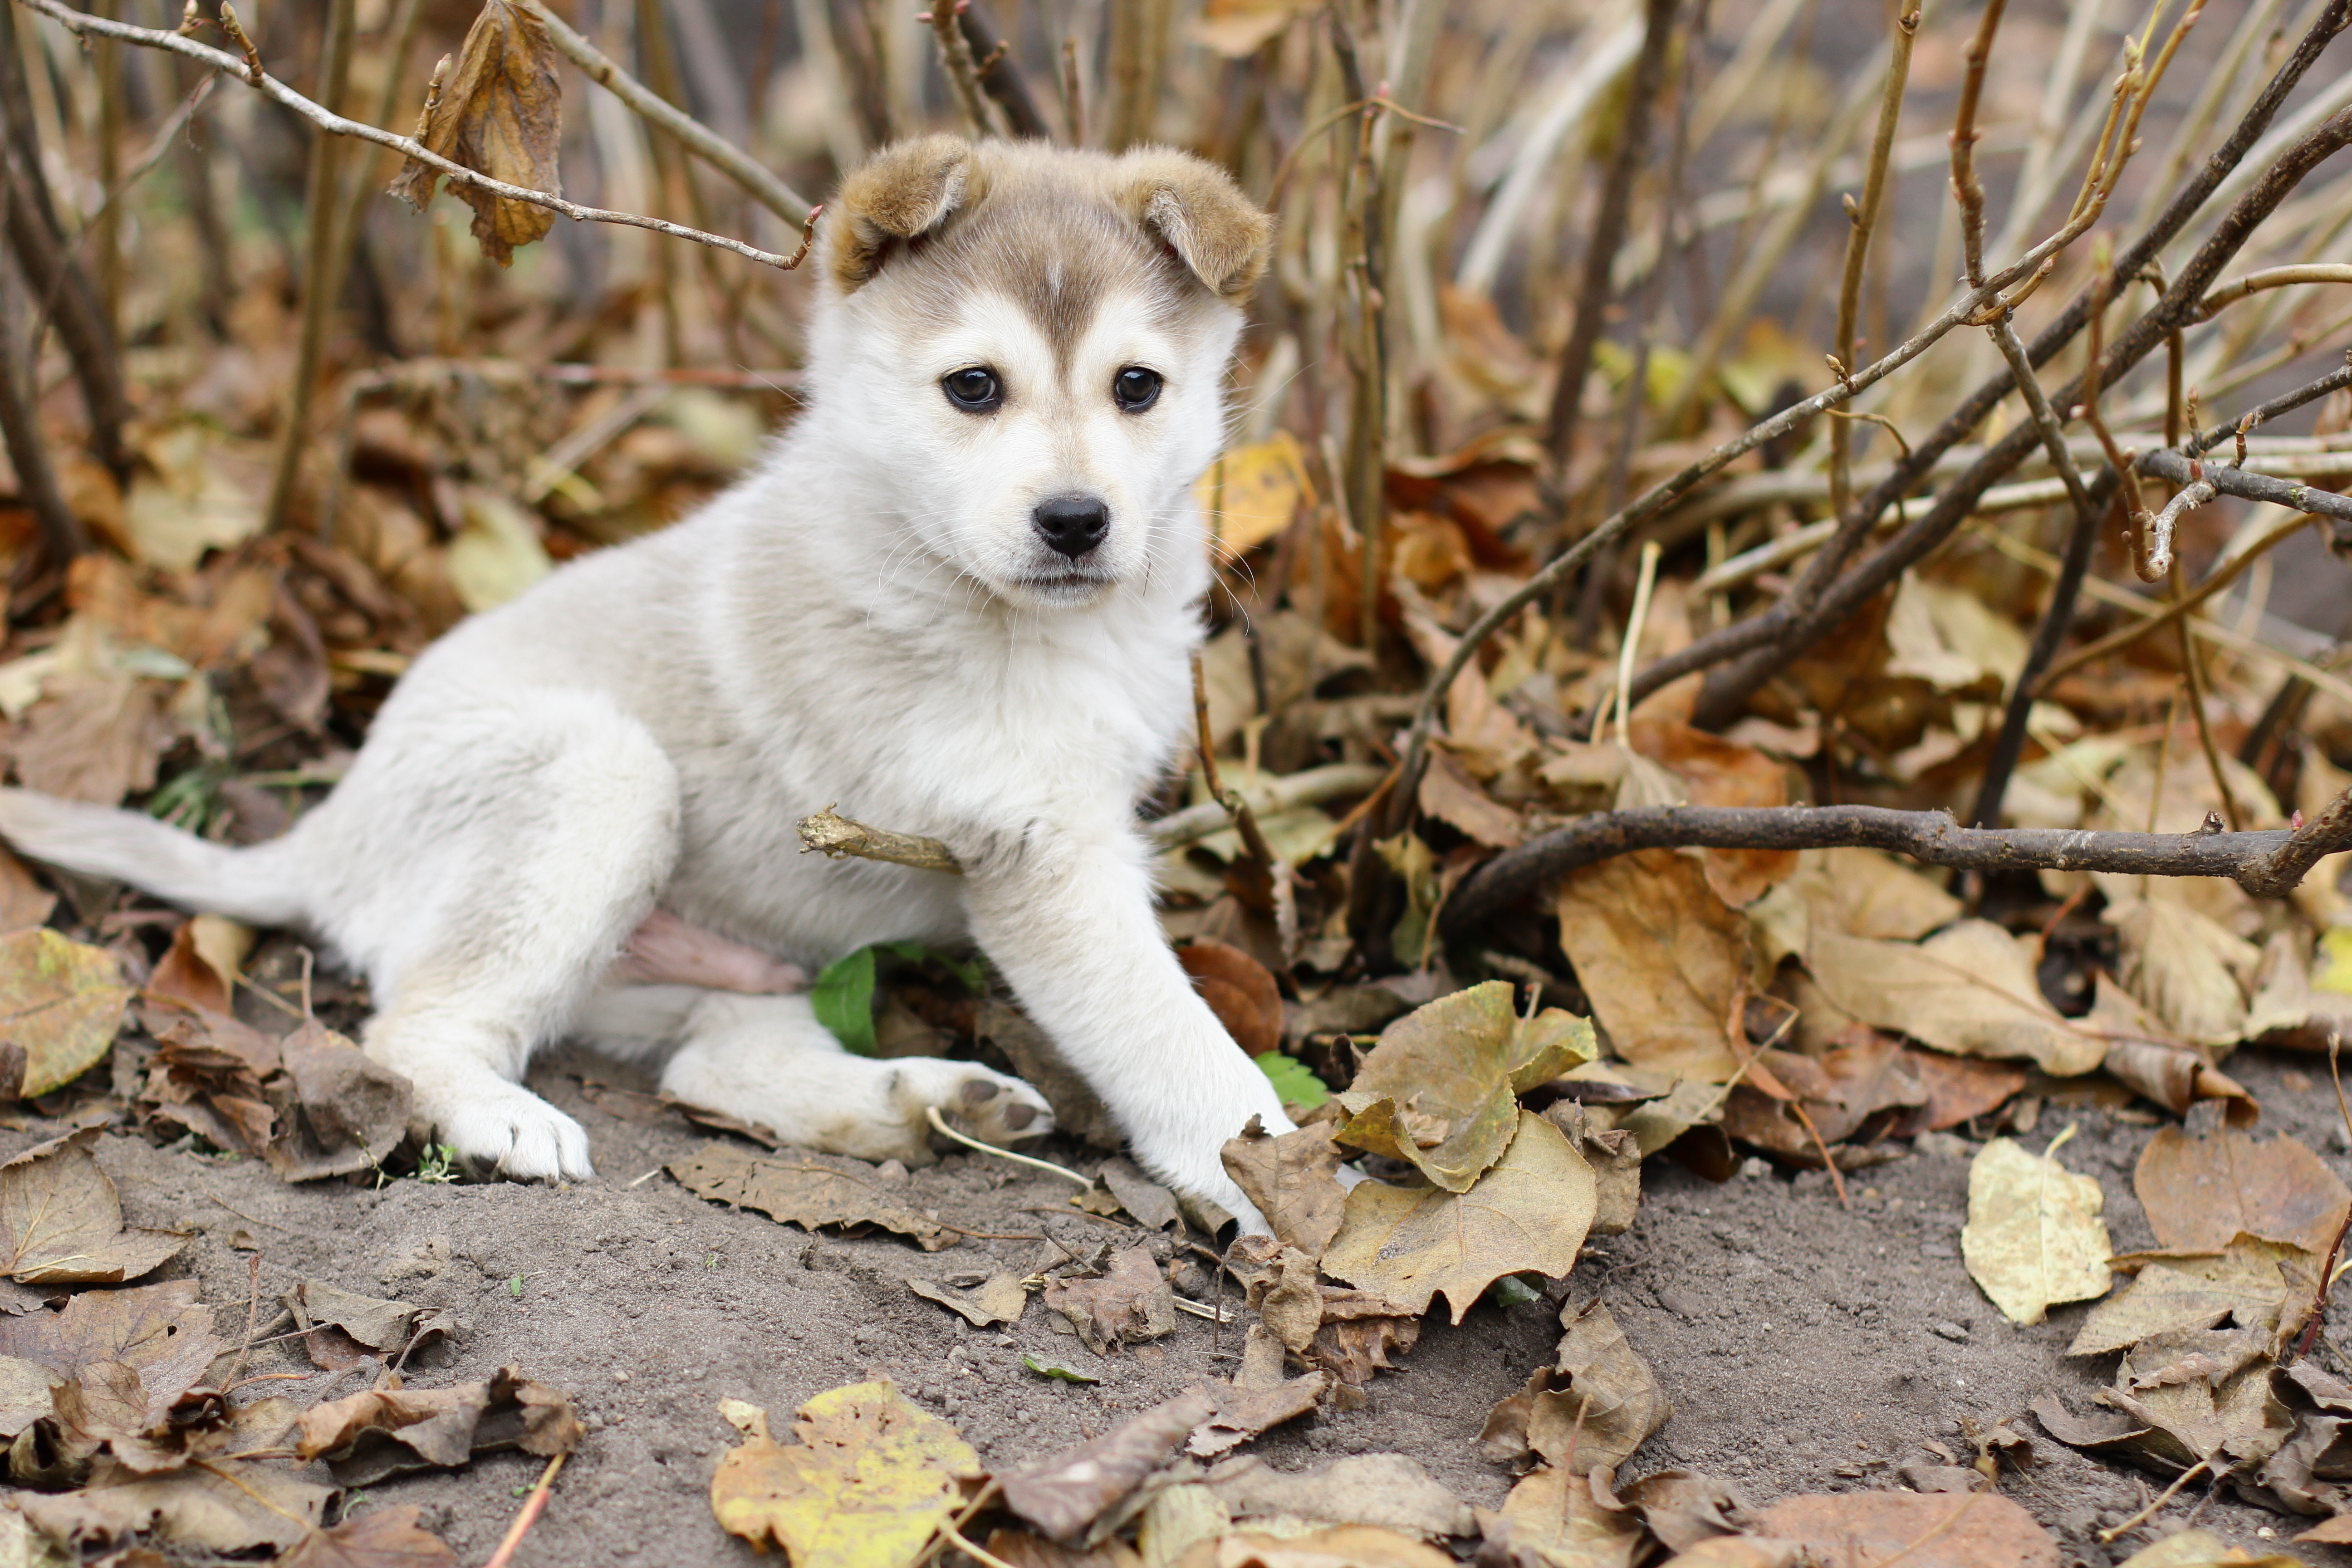 146116 download wallpaper Animals, Puppy, Foliage, Autumn, Playful screensavers and pictures for free